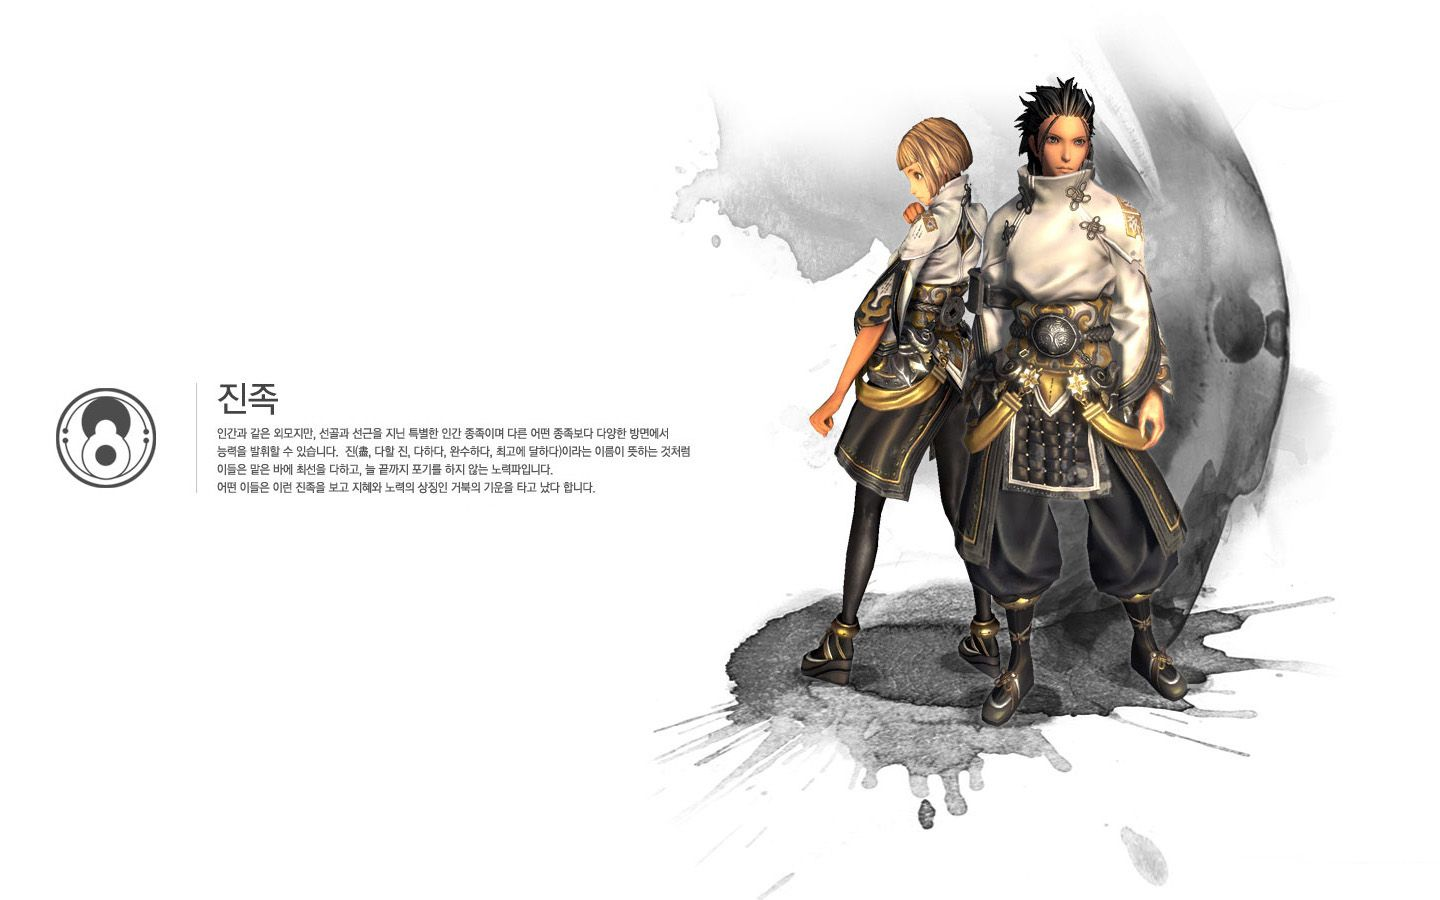 Blade and Soul Wallpaper by lishang 2   1440x900   Blade and Soul 1440x900